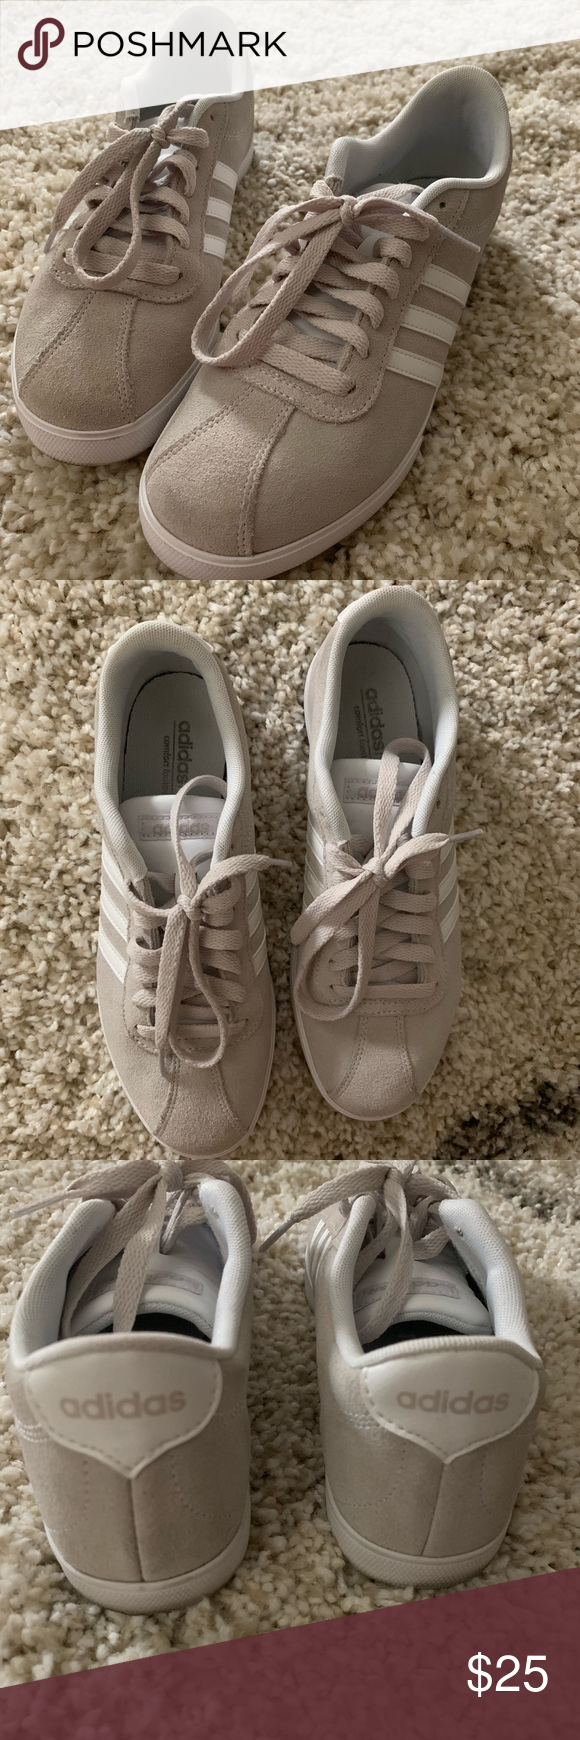 Adidas Neo Comfort Footbed Women's Size 8 | Adidas neo, Shoes ...